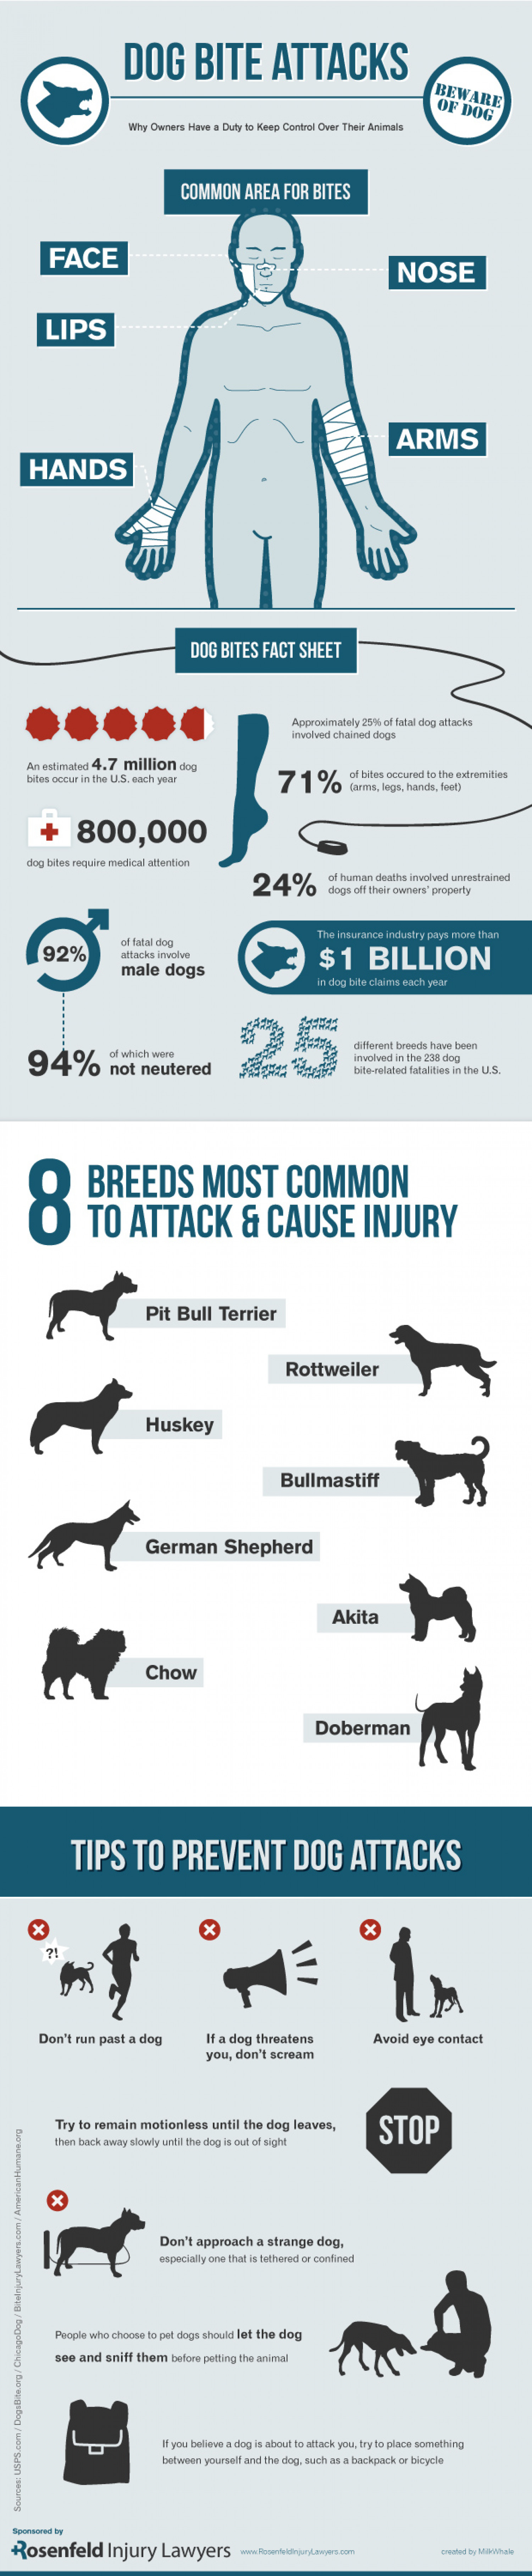 Dog Bite Attacks – Why owners have a duty to keep control over their animals Infographic